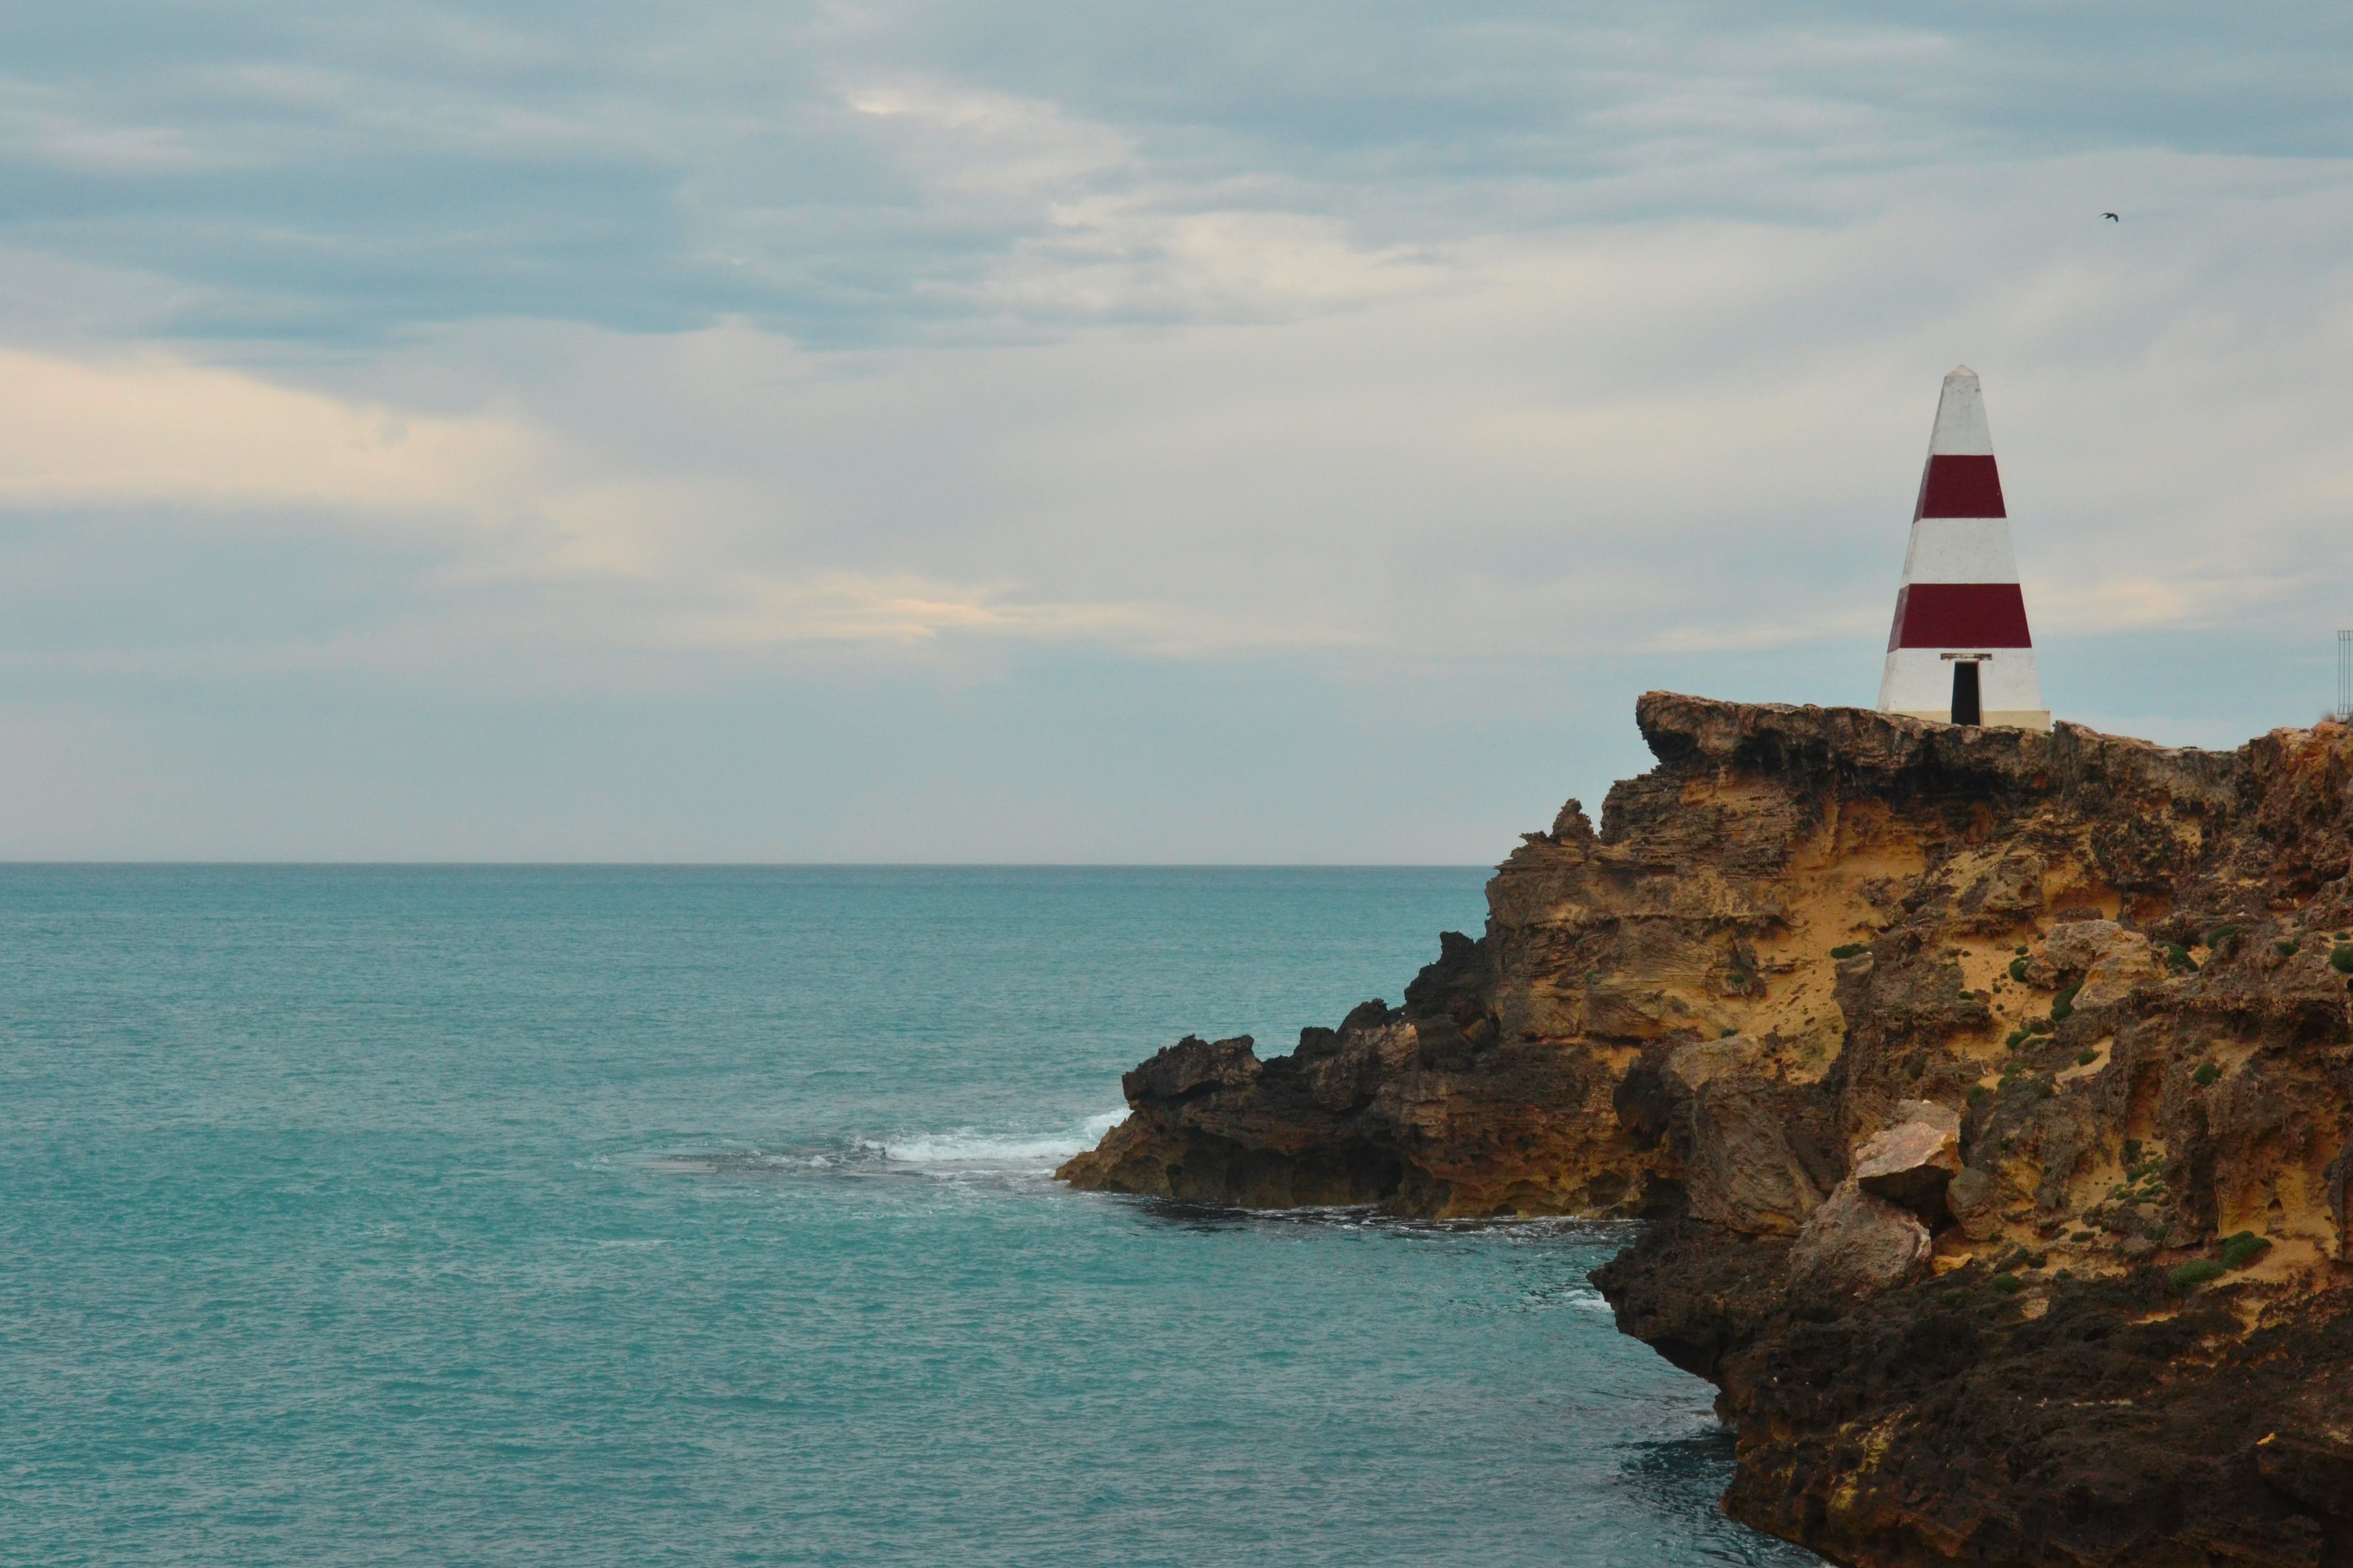 Free stock photo of ocean, cliff, lighthouse, robe